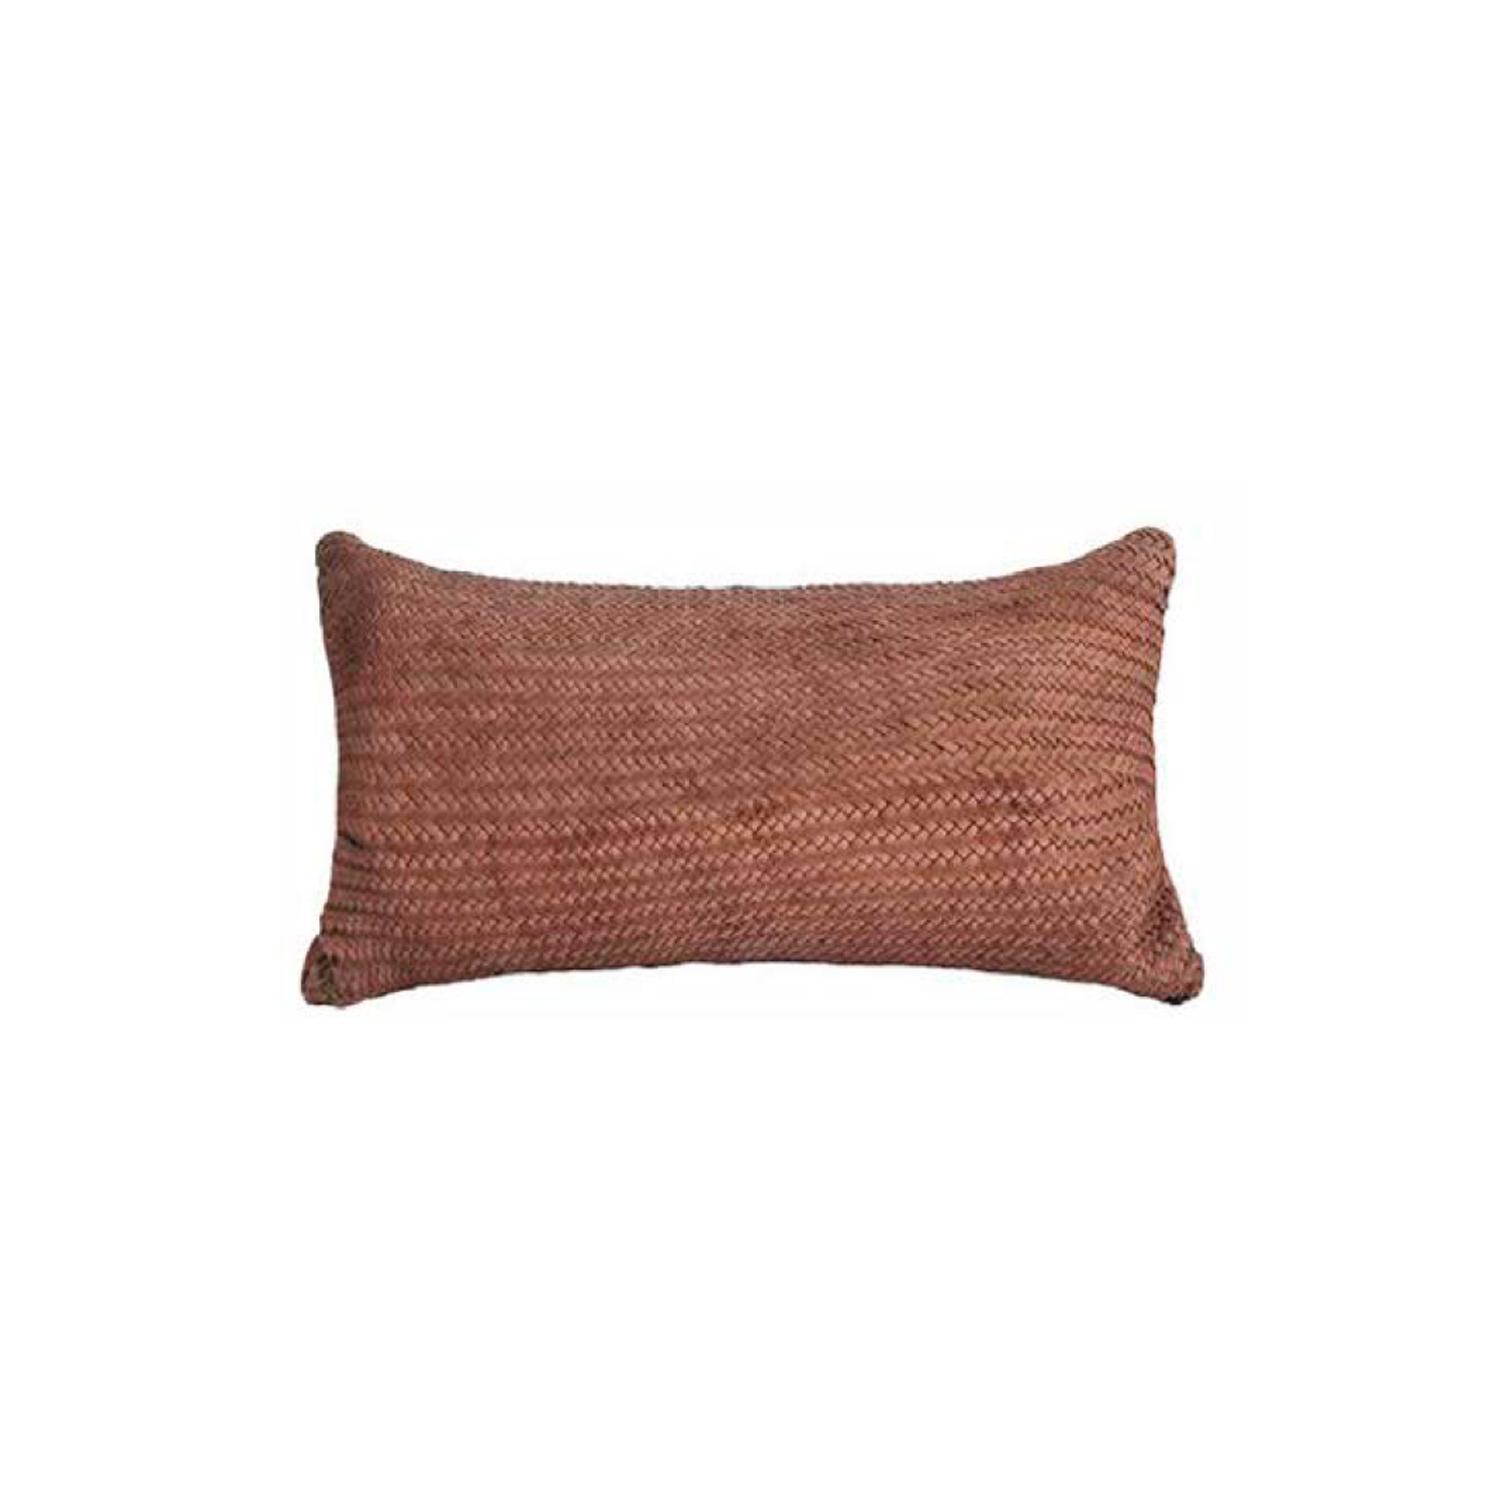 Aspen Croco Woven Leather Cushion Small - The Aspen Croco Woven Leather Cushion is designed to complement an ambient with a natural and sophisticated feeling. This cushion style is available in pleated leather or pleated suede leather. Elisa Atheniense woven handmade leather cushions are specially manufactured in Brazil using an exclusive treated leather that brings the soft feel touch to every single piece.   The front panel is handwoven in leather and the back panel is 100% Pes, made in Brazil.  The inner cushion is available in Hollow Fibre and European Duck Feathers, made in the UK.  Please enquire for more information and see colour chart for reference.   | Matter of Stuff